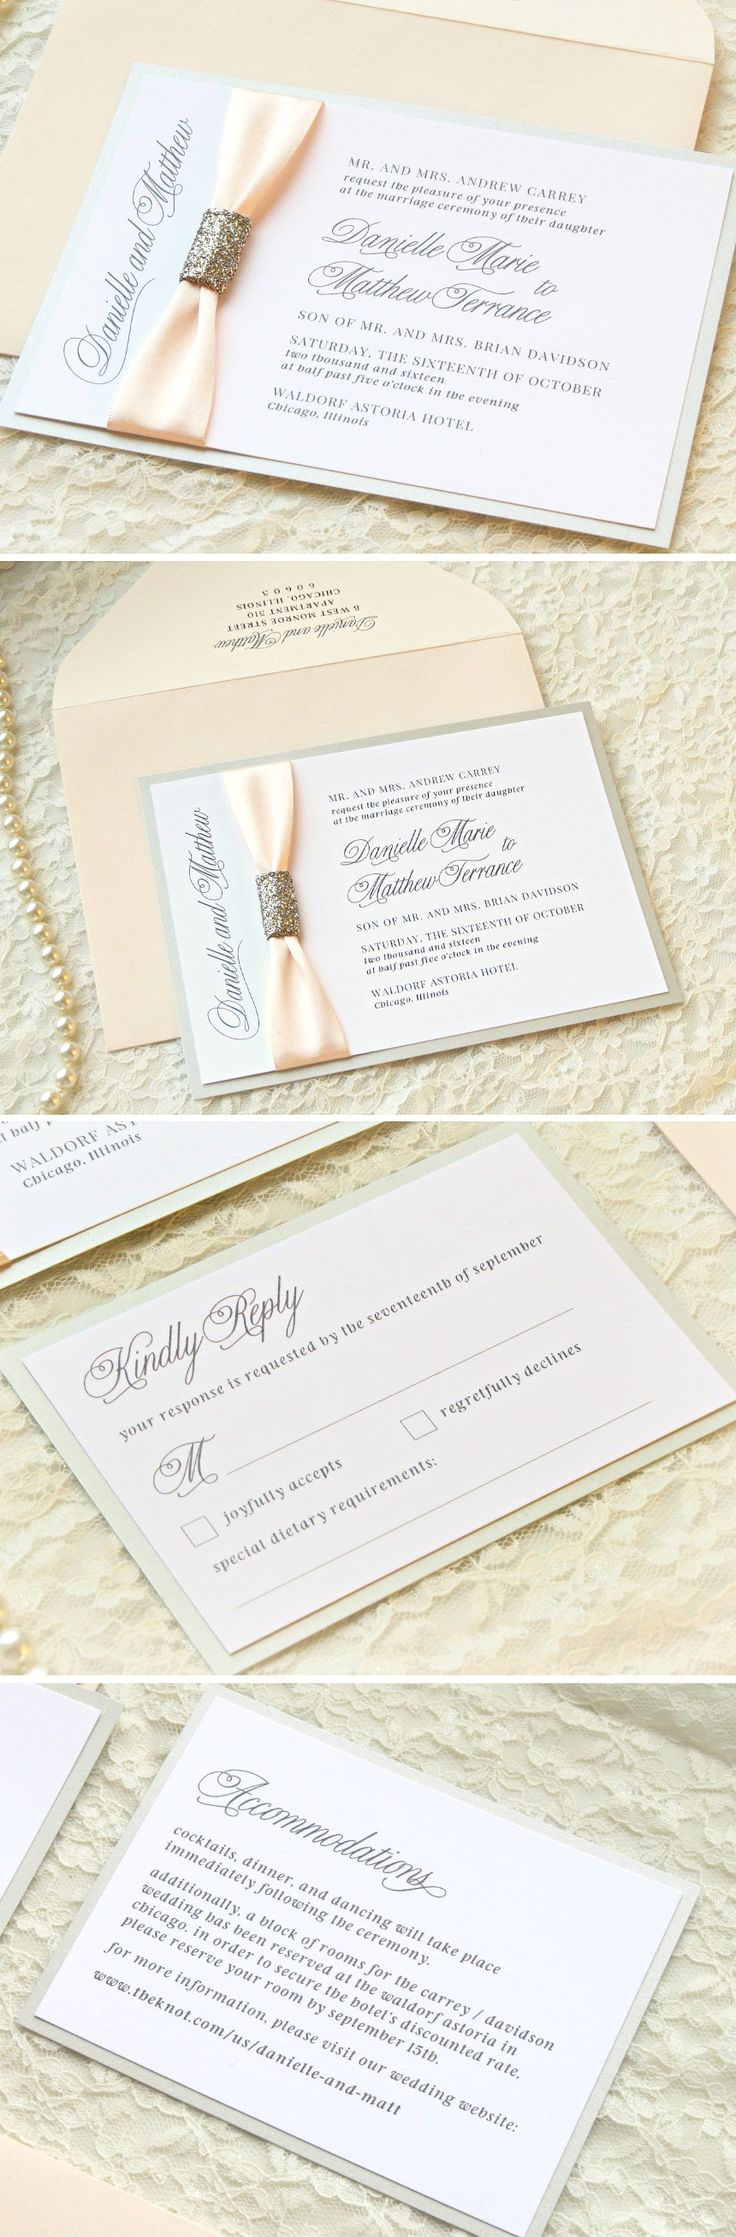 DEPOSIT: The Serendipity Suite   Blush Shimmer, Rose Gold Glitter, Satin  Ribbon Wedding Invitation Suite   Elegant, Luxe, Formal, And Glam